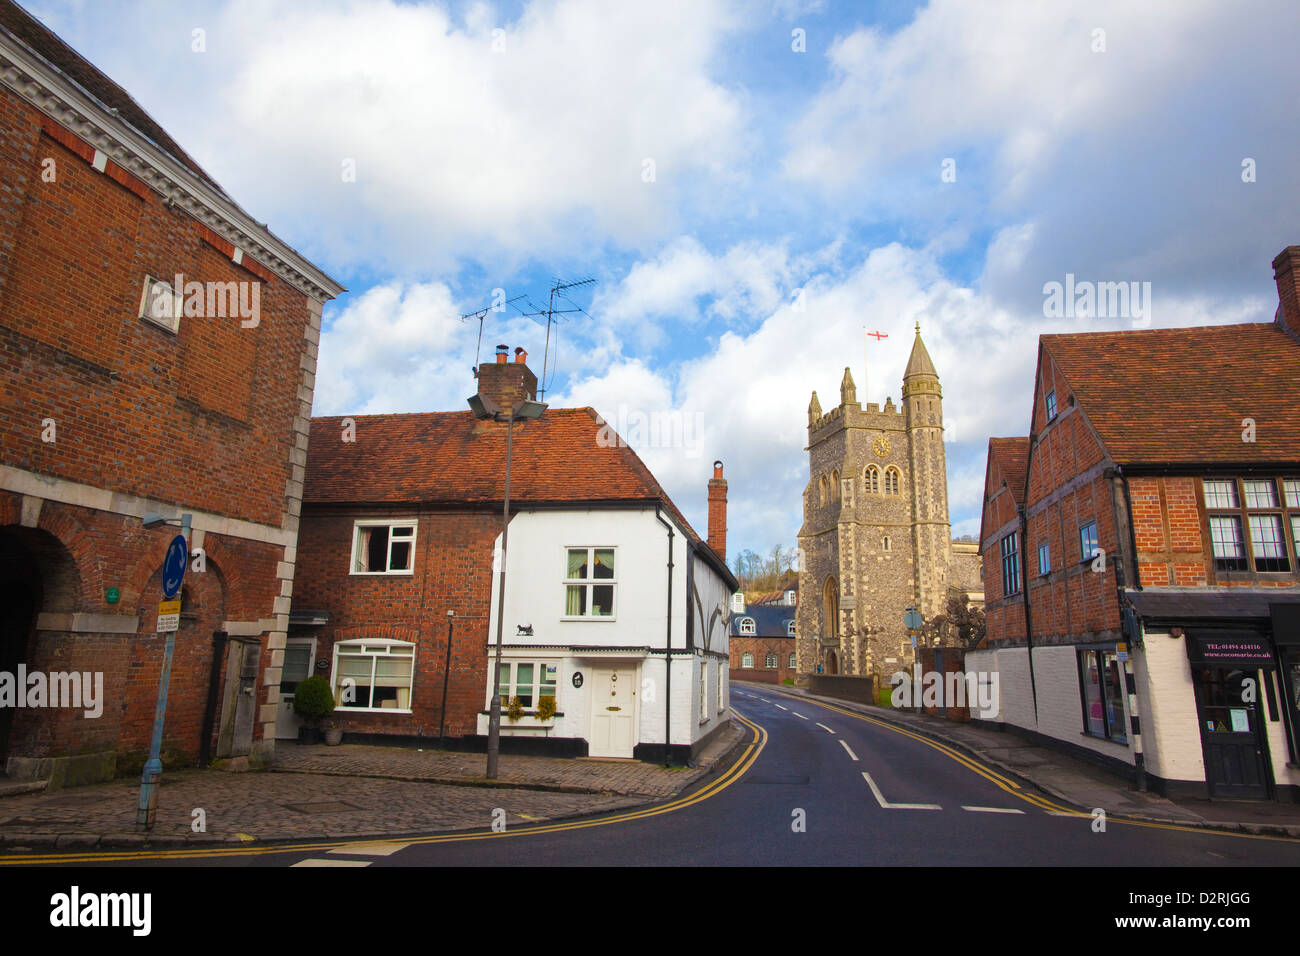 St Mary's Church in the distance, Old Amersham, the Chilterns, Buckinghamshire, England, UK - Stock Image